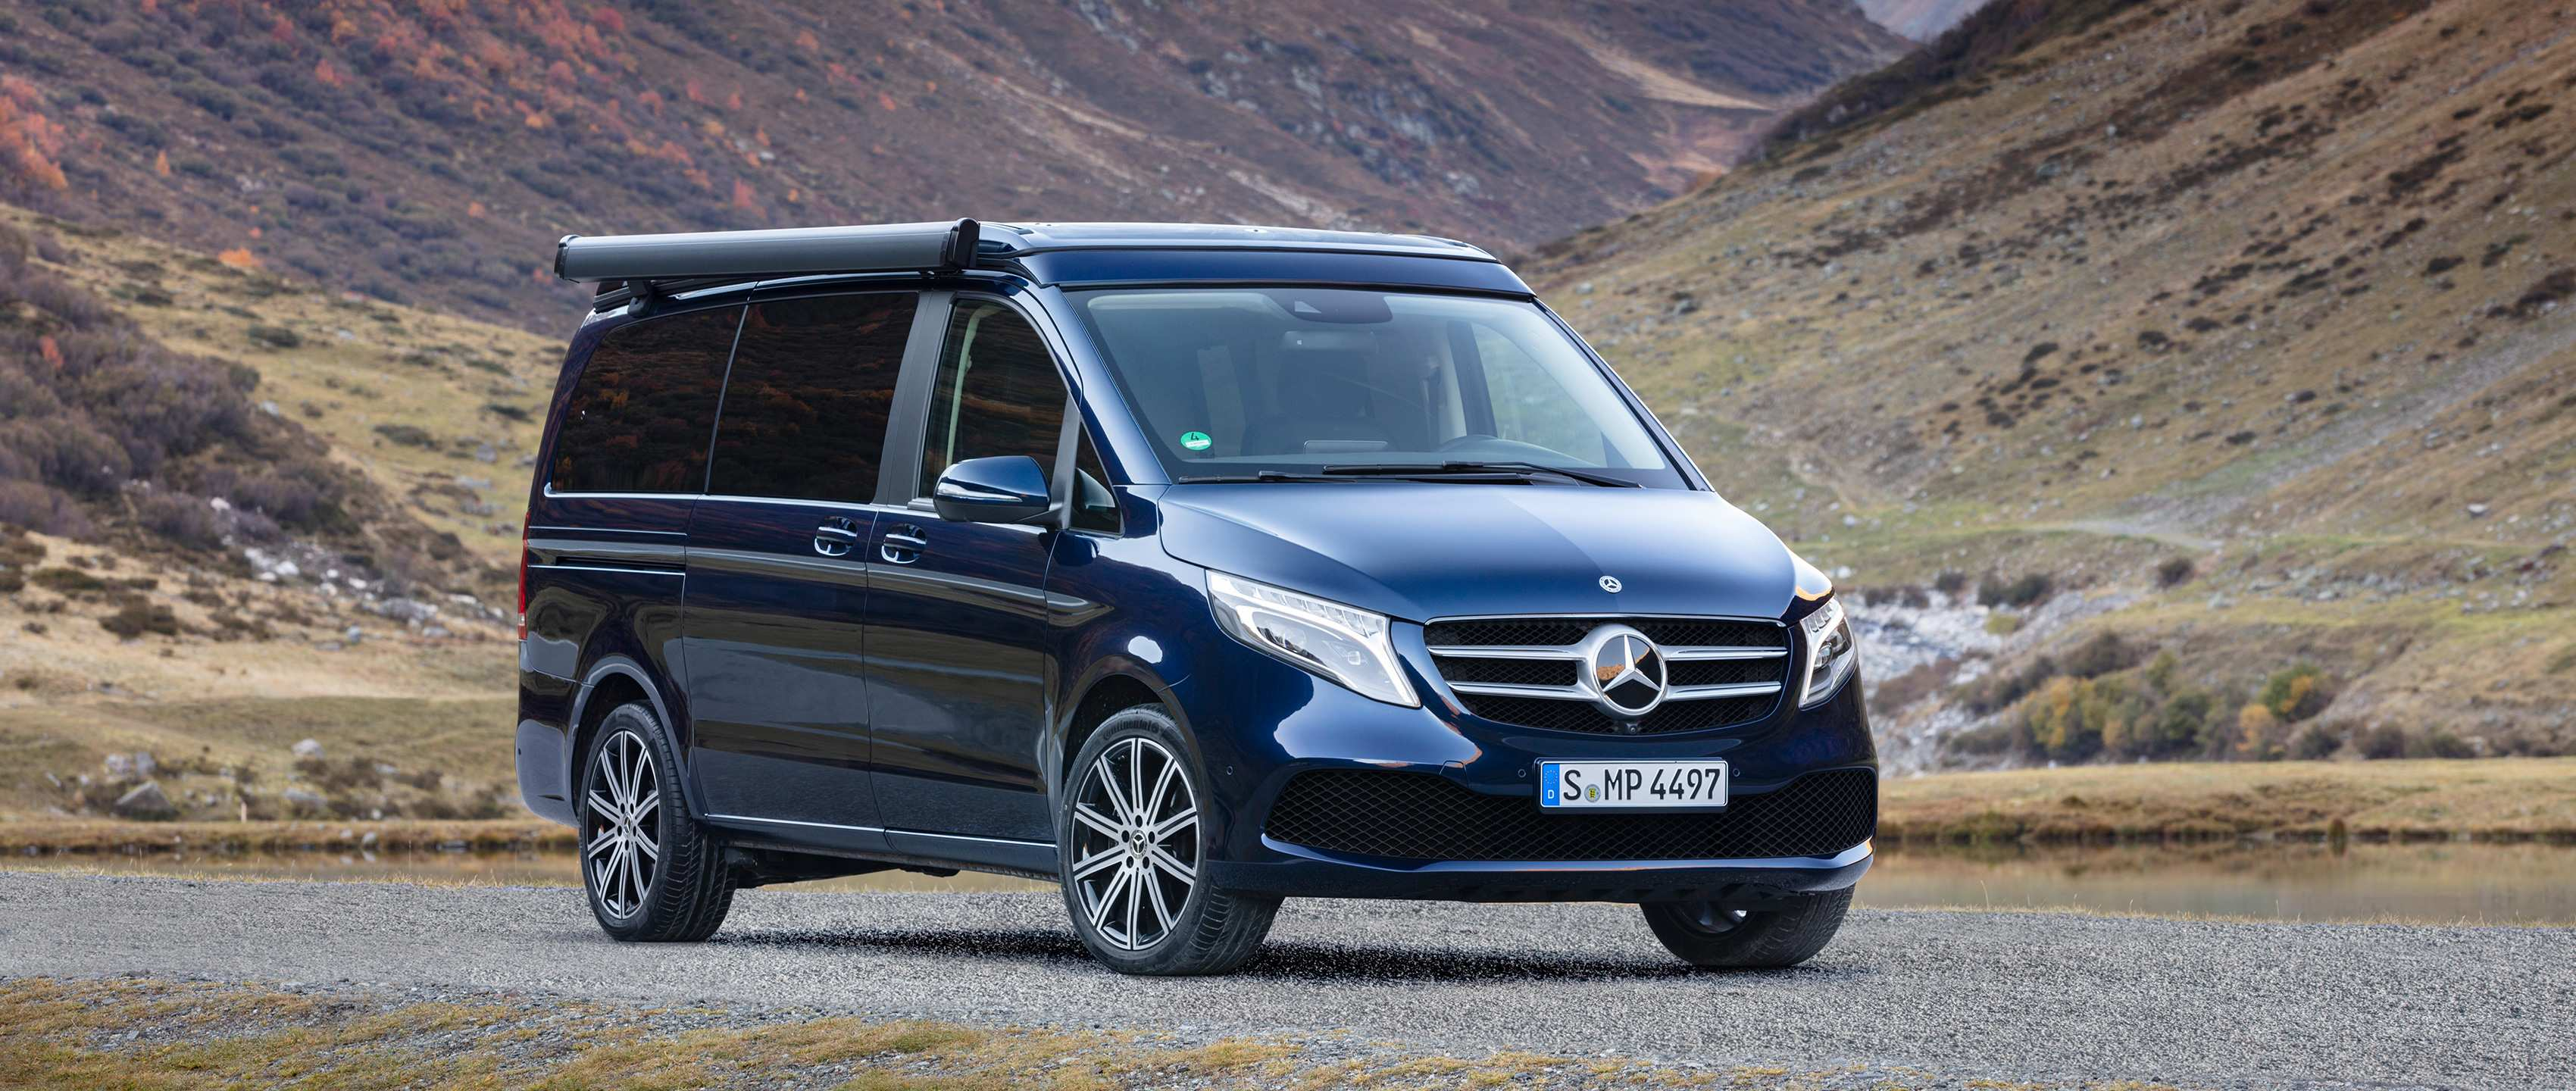 55 The Best Mercedes V Klasse 2019 First Drive